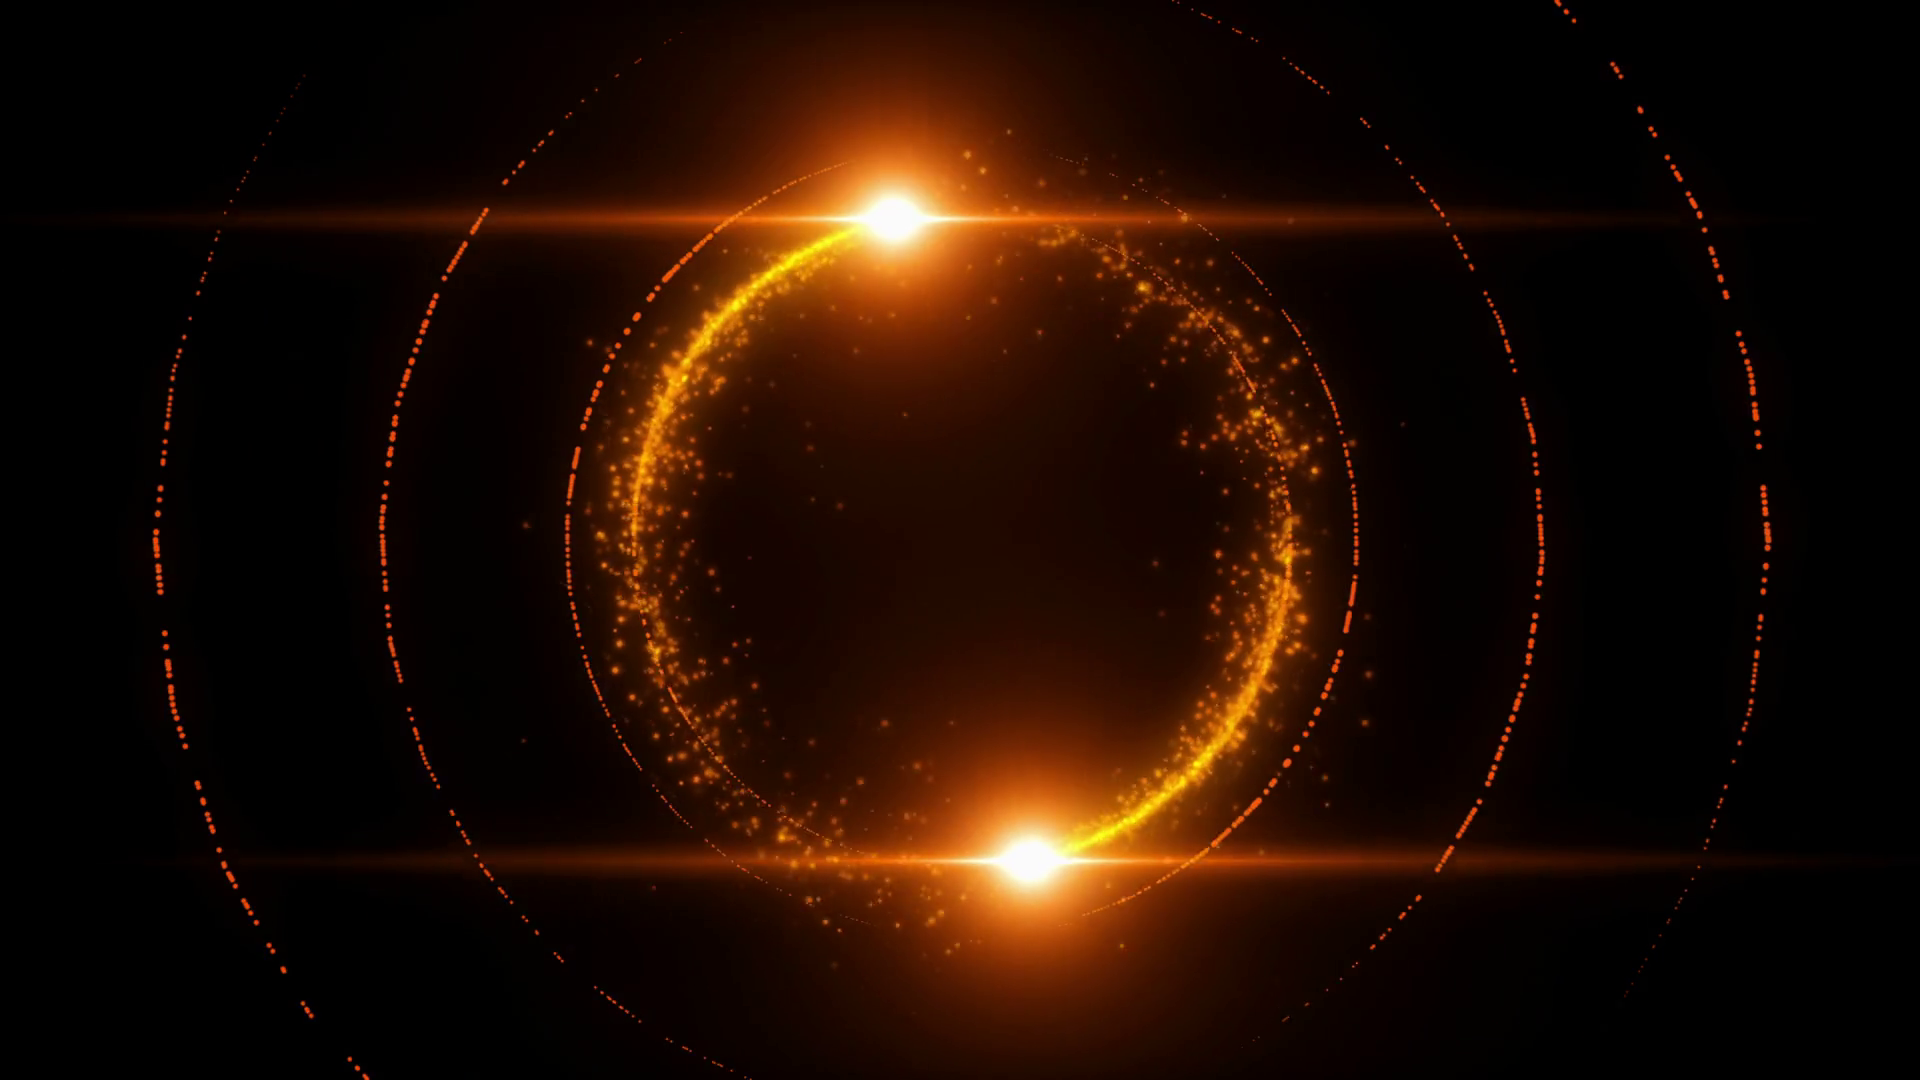 Lens Flares Spinning And Forming Particles Ring Orange Gold Motion Background Storyblocks